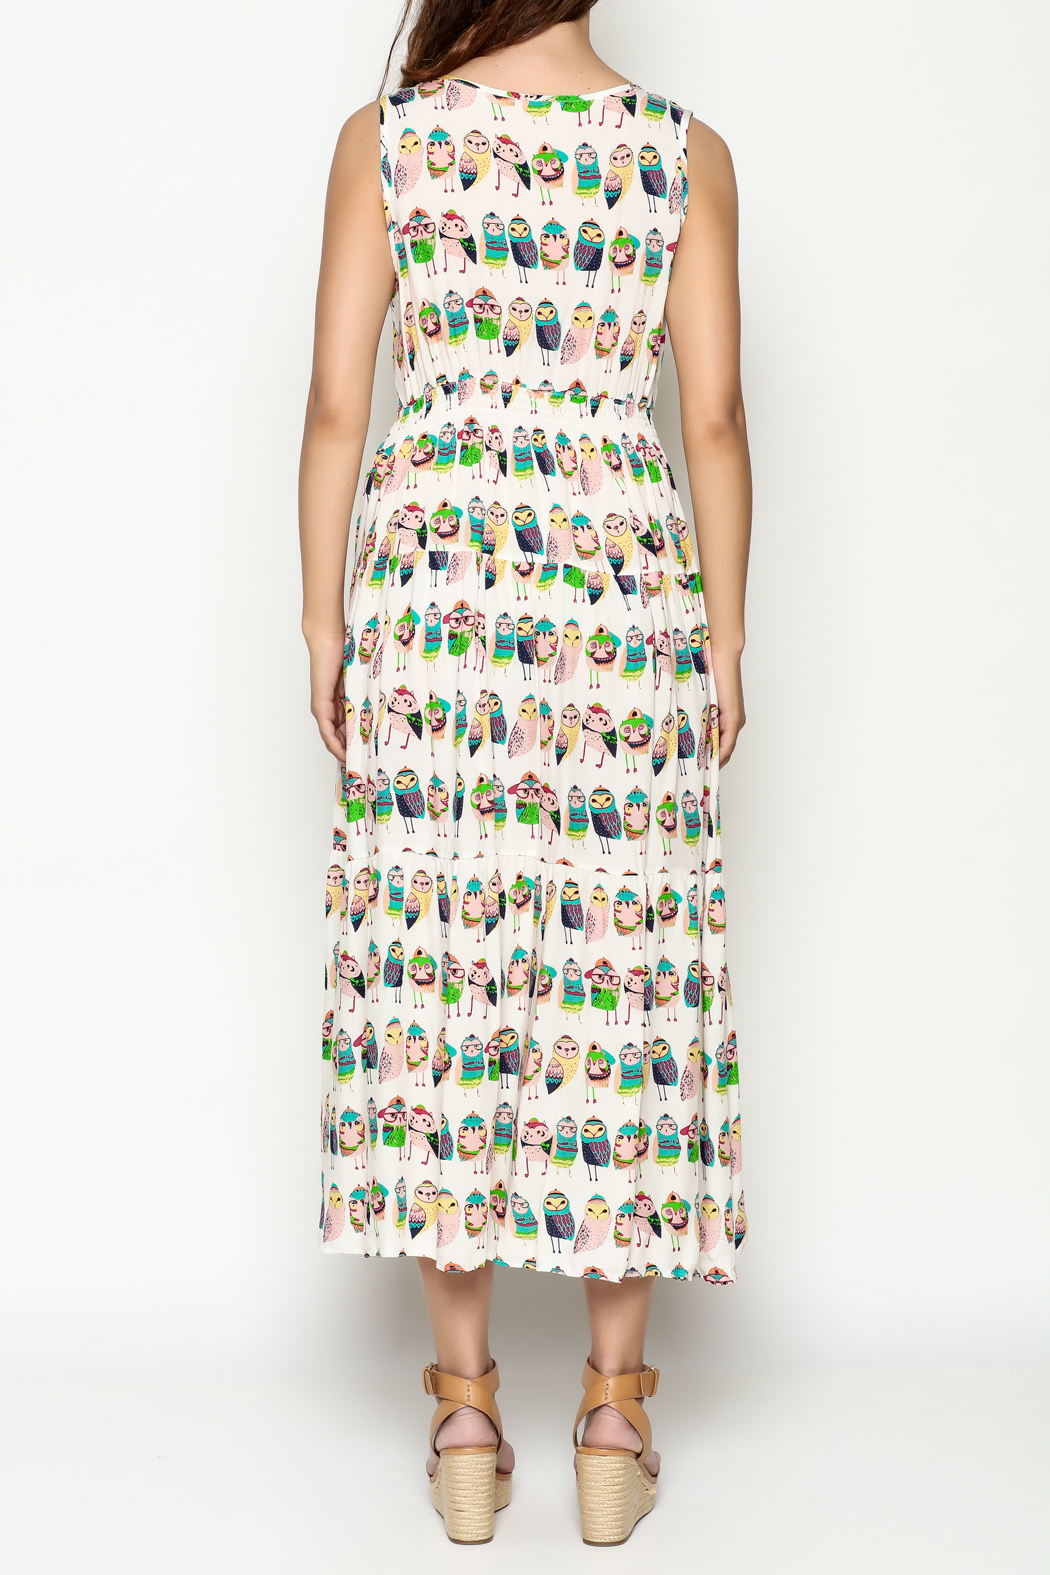 THINK CLOSET Colorful Owl Dress - Back Cropped Image